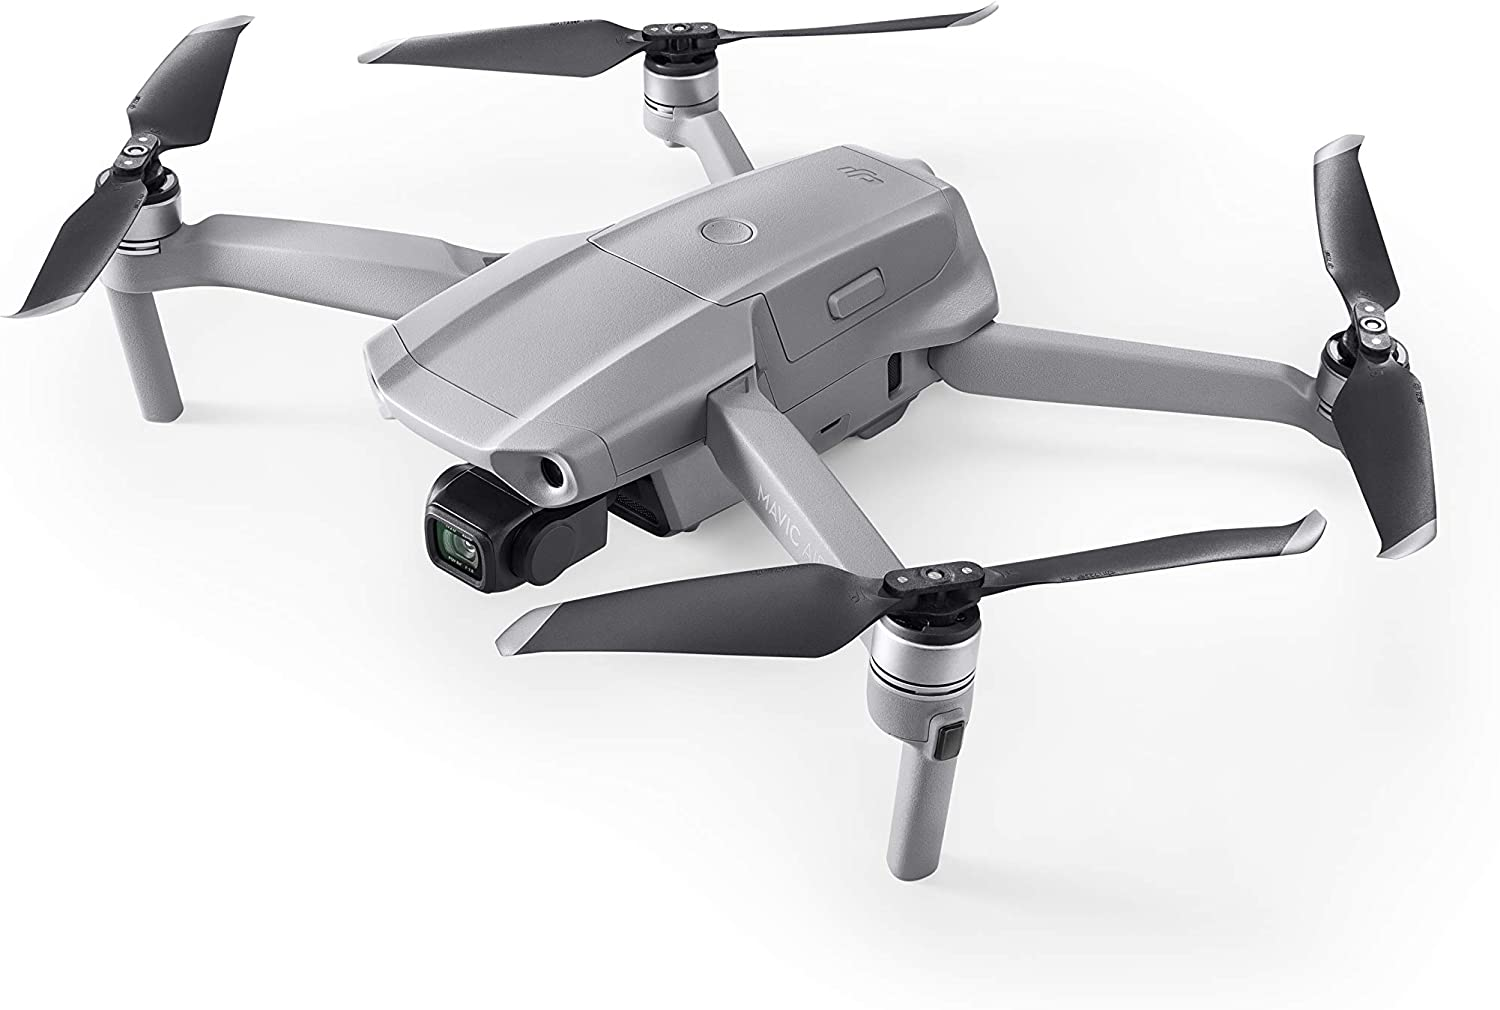 DJI MAVIC AIR 2 Drone is at #1 for best drones under 1000 dollars